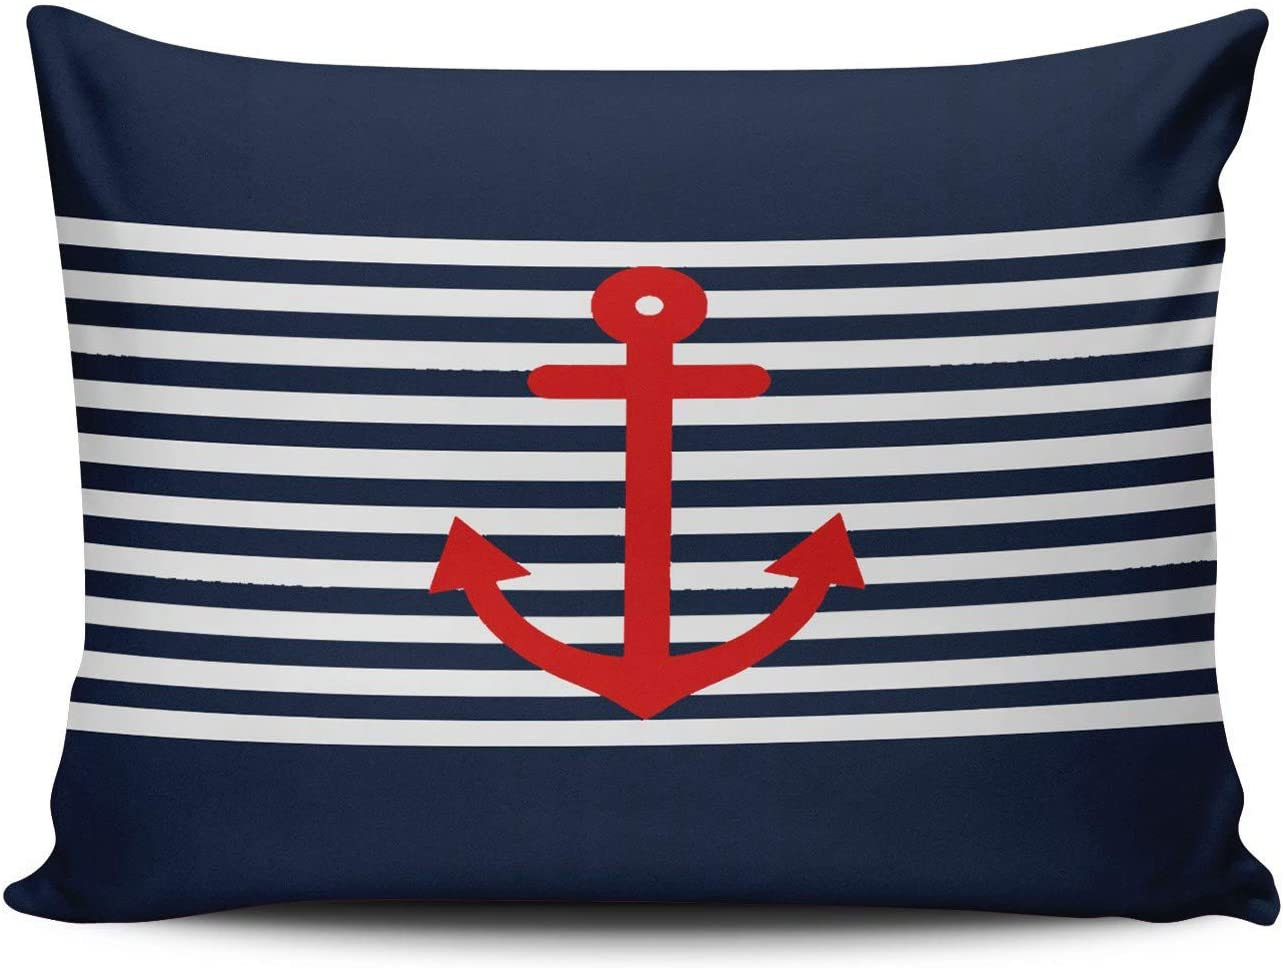 XIAFA Home Custom Pillowcase Red Anchor on Navy Blue Nautical Simple Decorations Sofa Throw Pillow Case Cushion Cover One Sided Printed Design Lumbar 12X20 Inch (Set of 1)